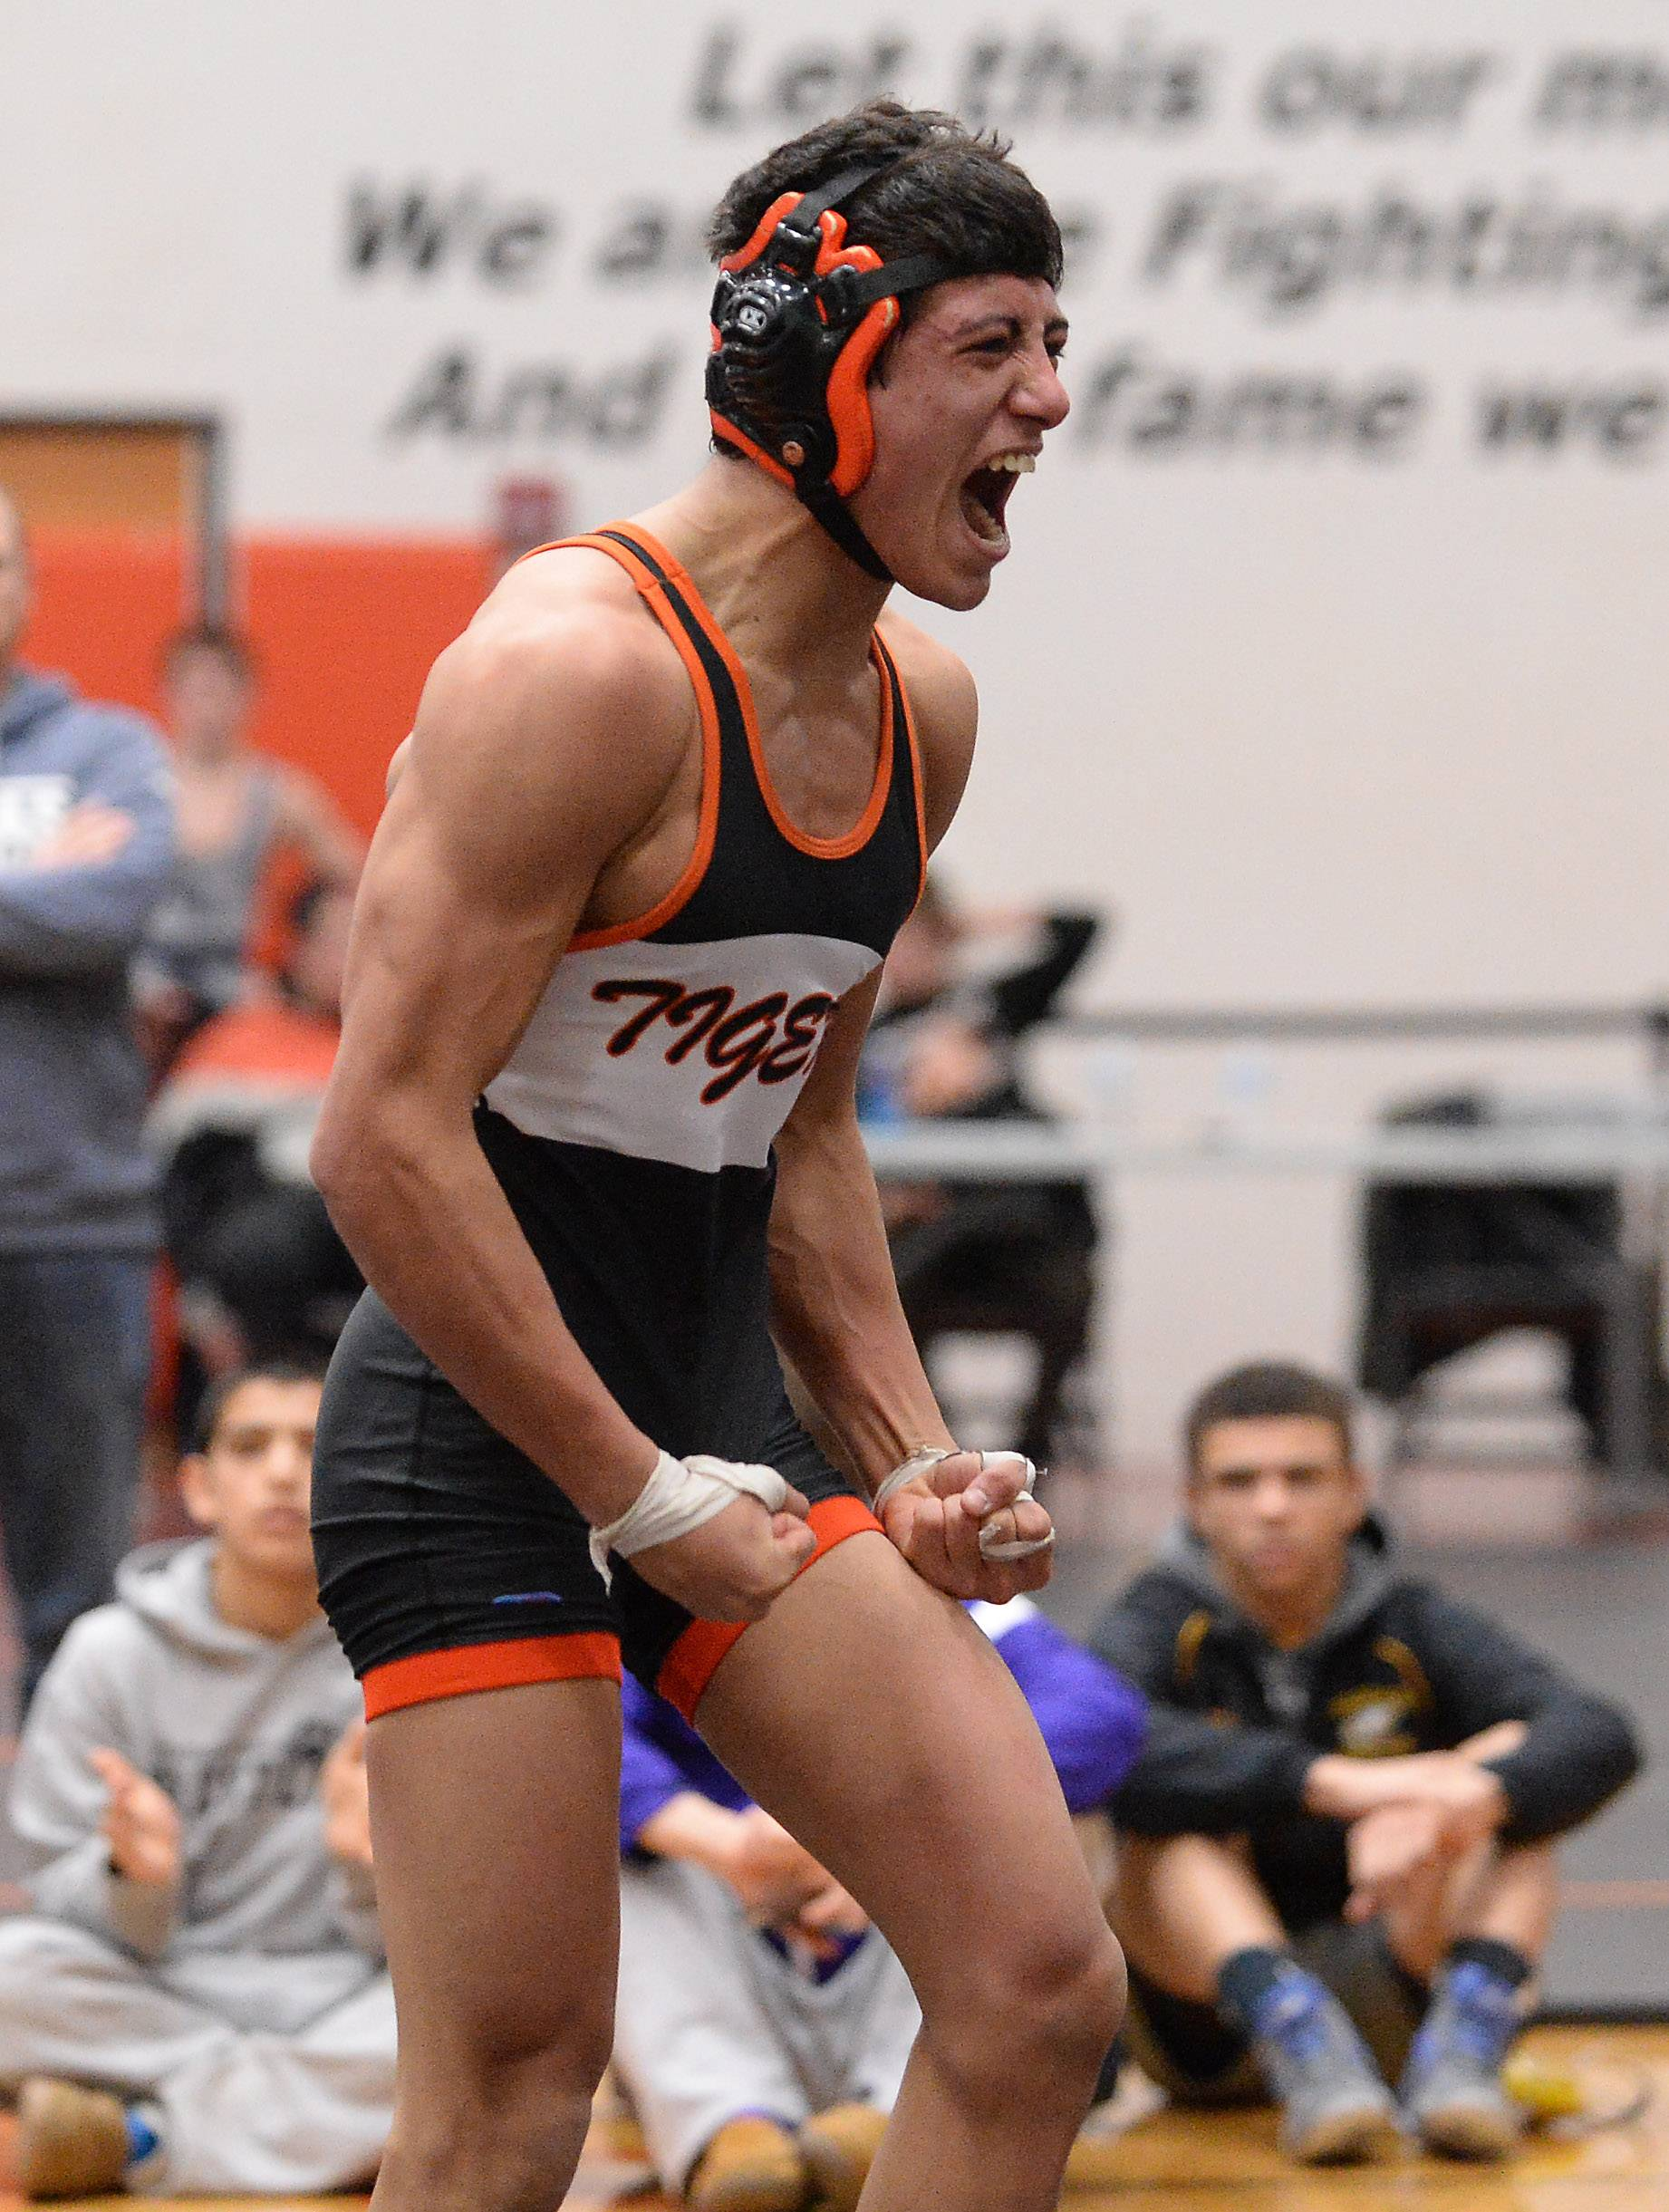 Mike Peterson of Crystal Lake Central is pumped after overpowering John Cullen of Cary Grove in the 138 weight class for the win at the 2015 Fox Valley Conference Wrestling Tournament at McHenry High School.